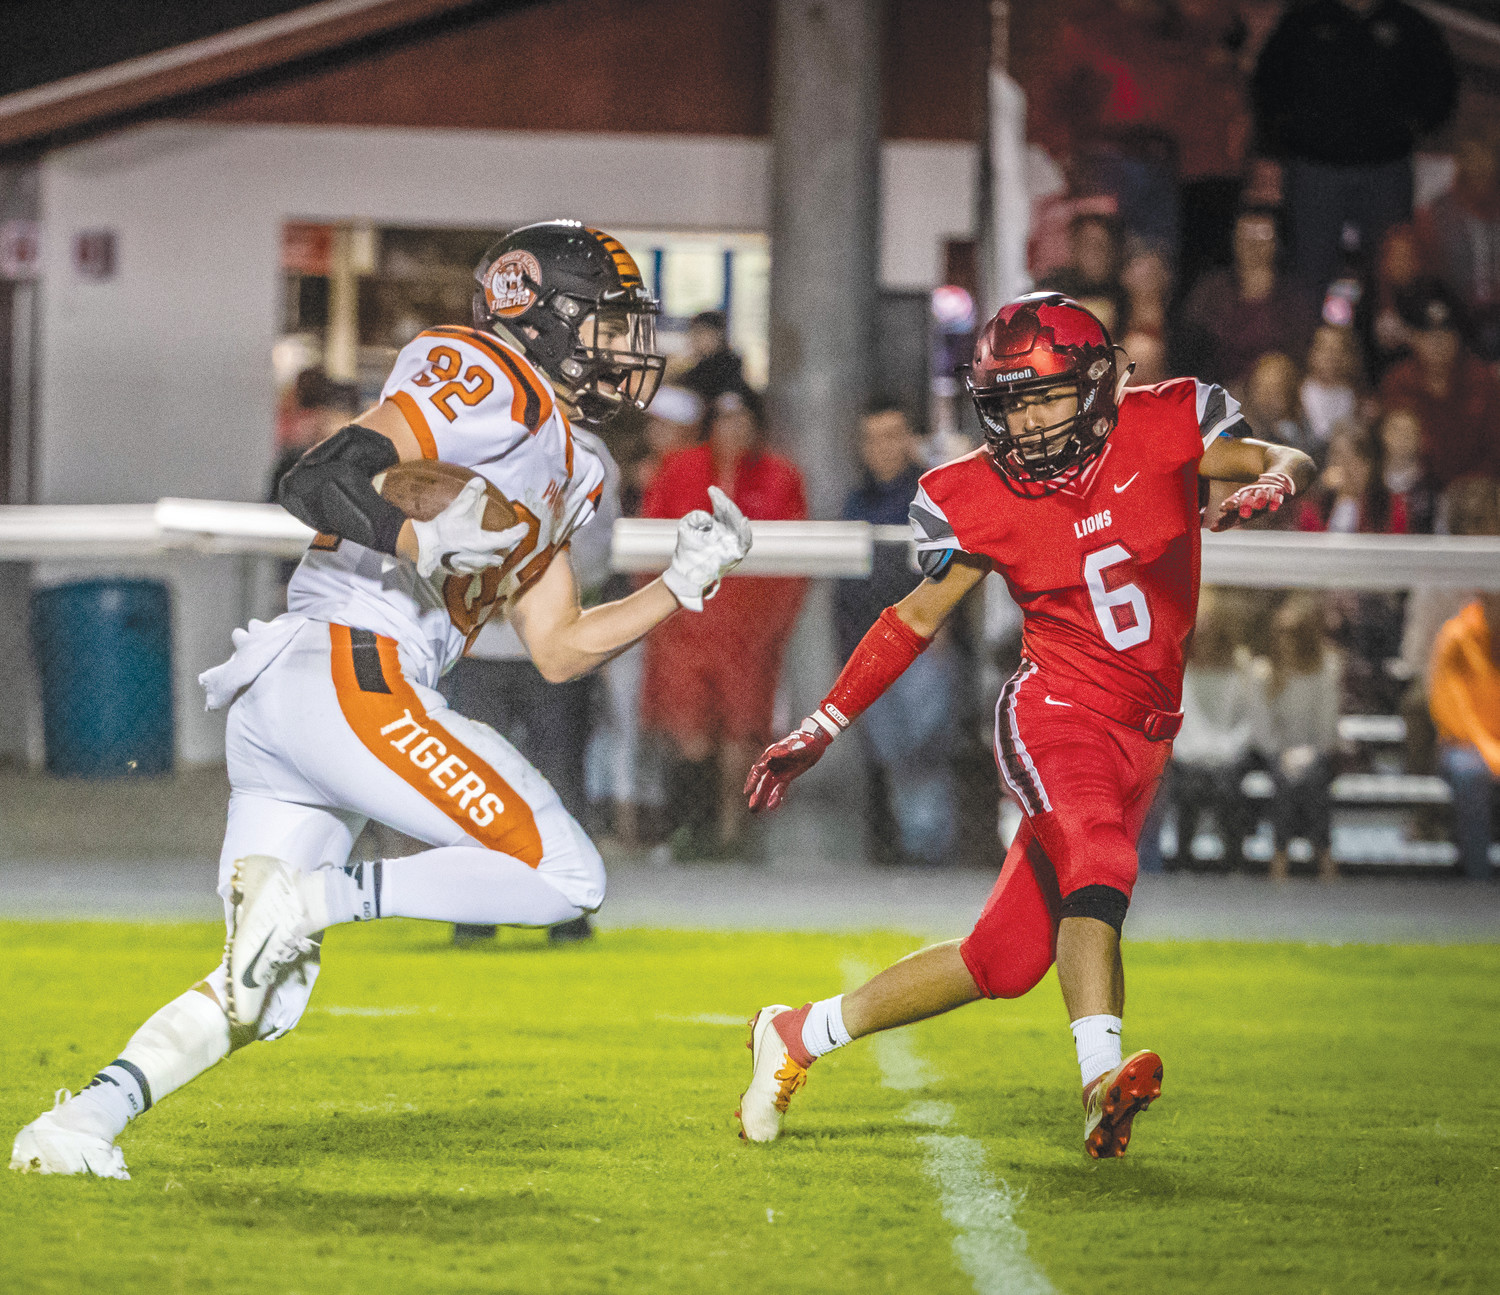 Tiger senior wide receiver Josh Willmoth (32) as Marshall defender Francisco Nava tries to get in position to tackle him. Paris spoiled the Lion homecoming with a 49-14 win Friday.